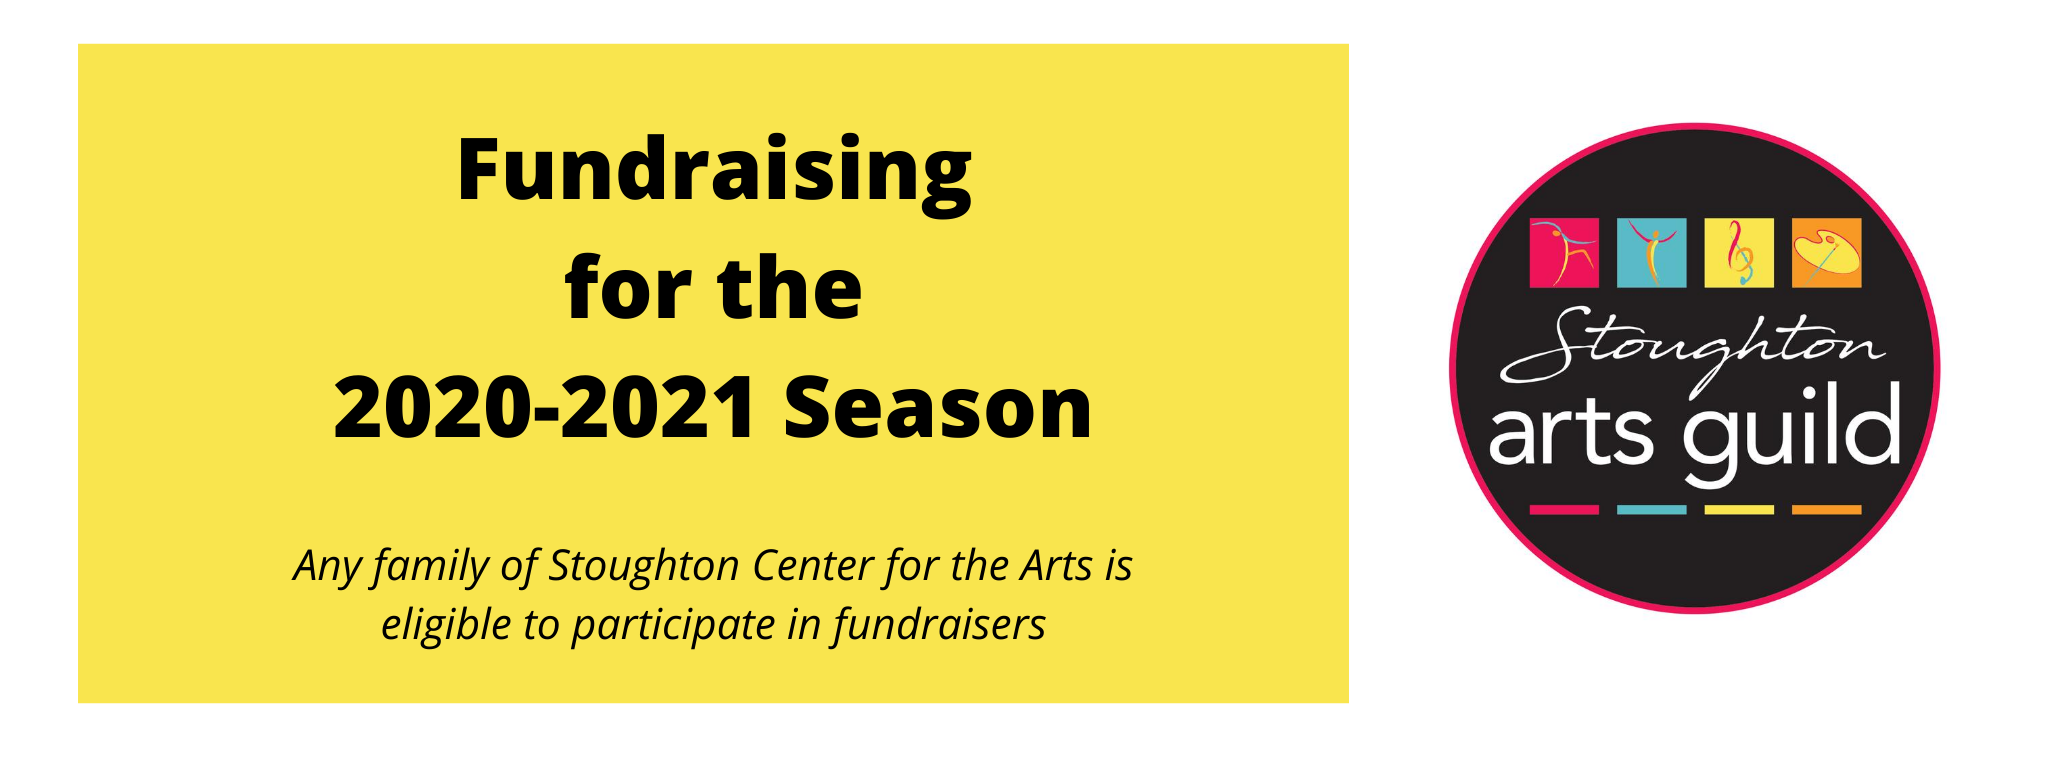 Fundraisers for the 2020-2021 Season